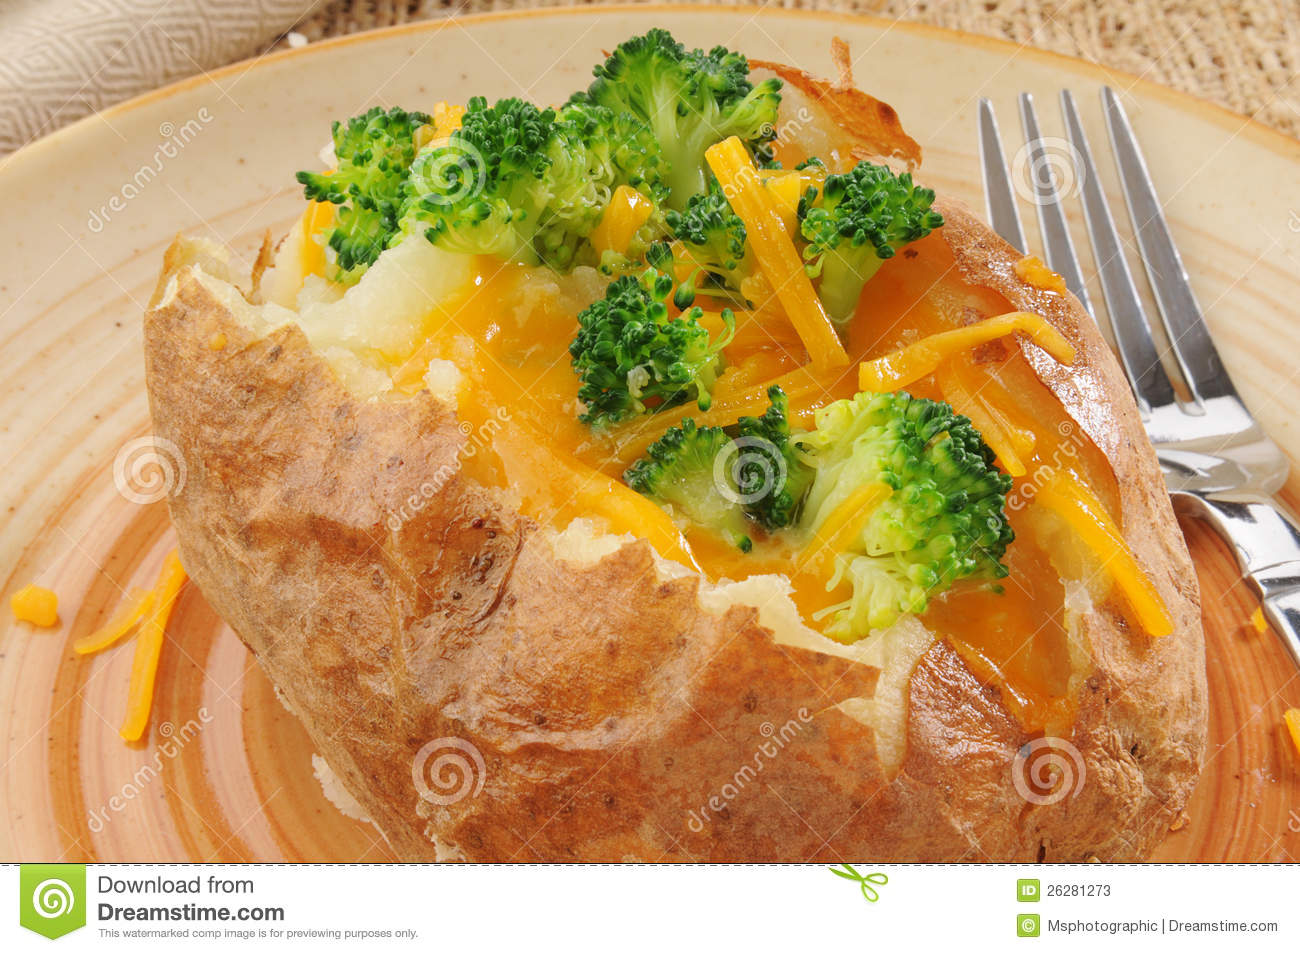 Baked Potato With Broccoli And Cheese Stock Photos - Image: 26281273